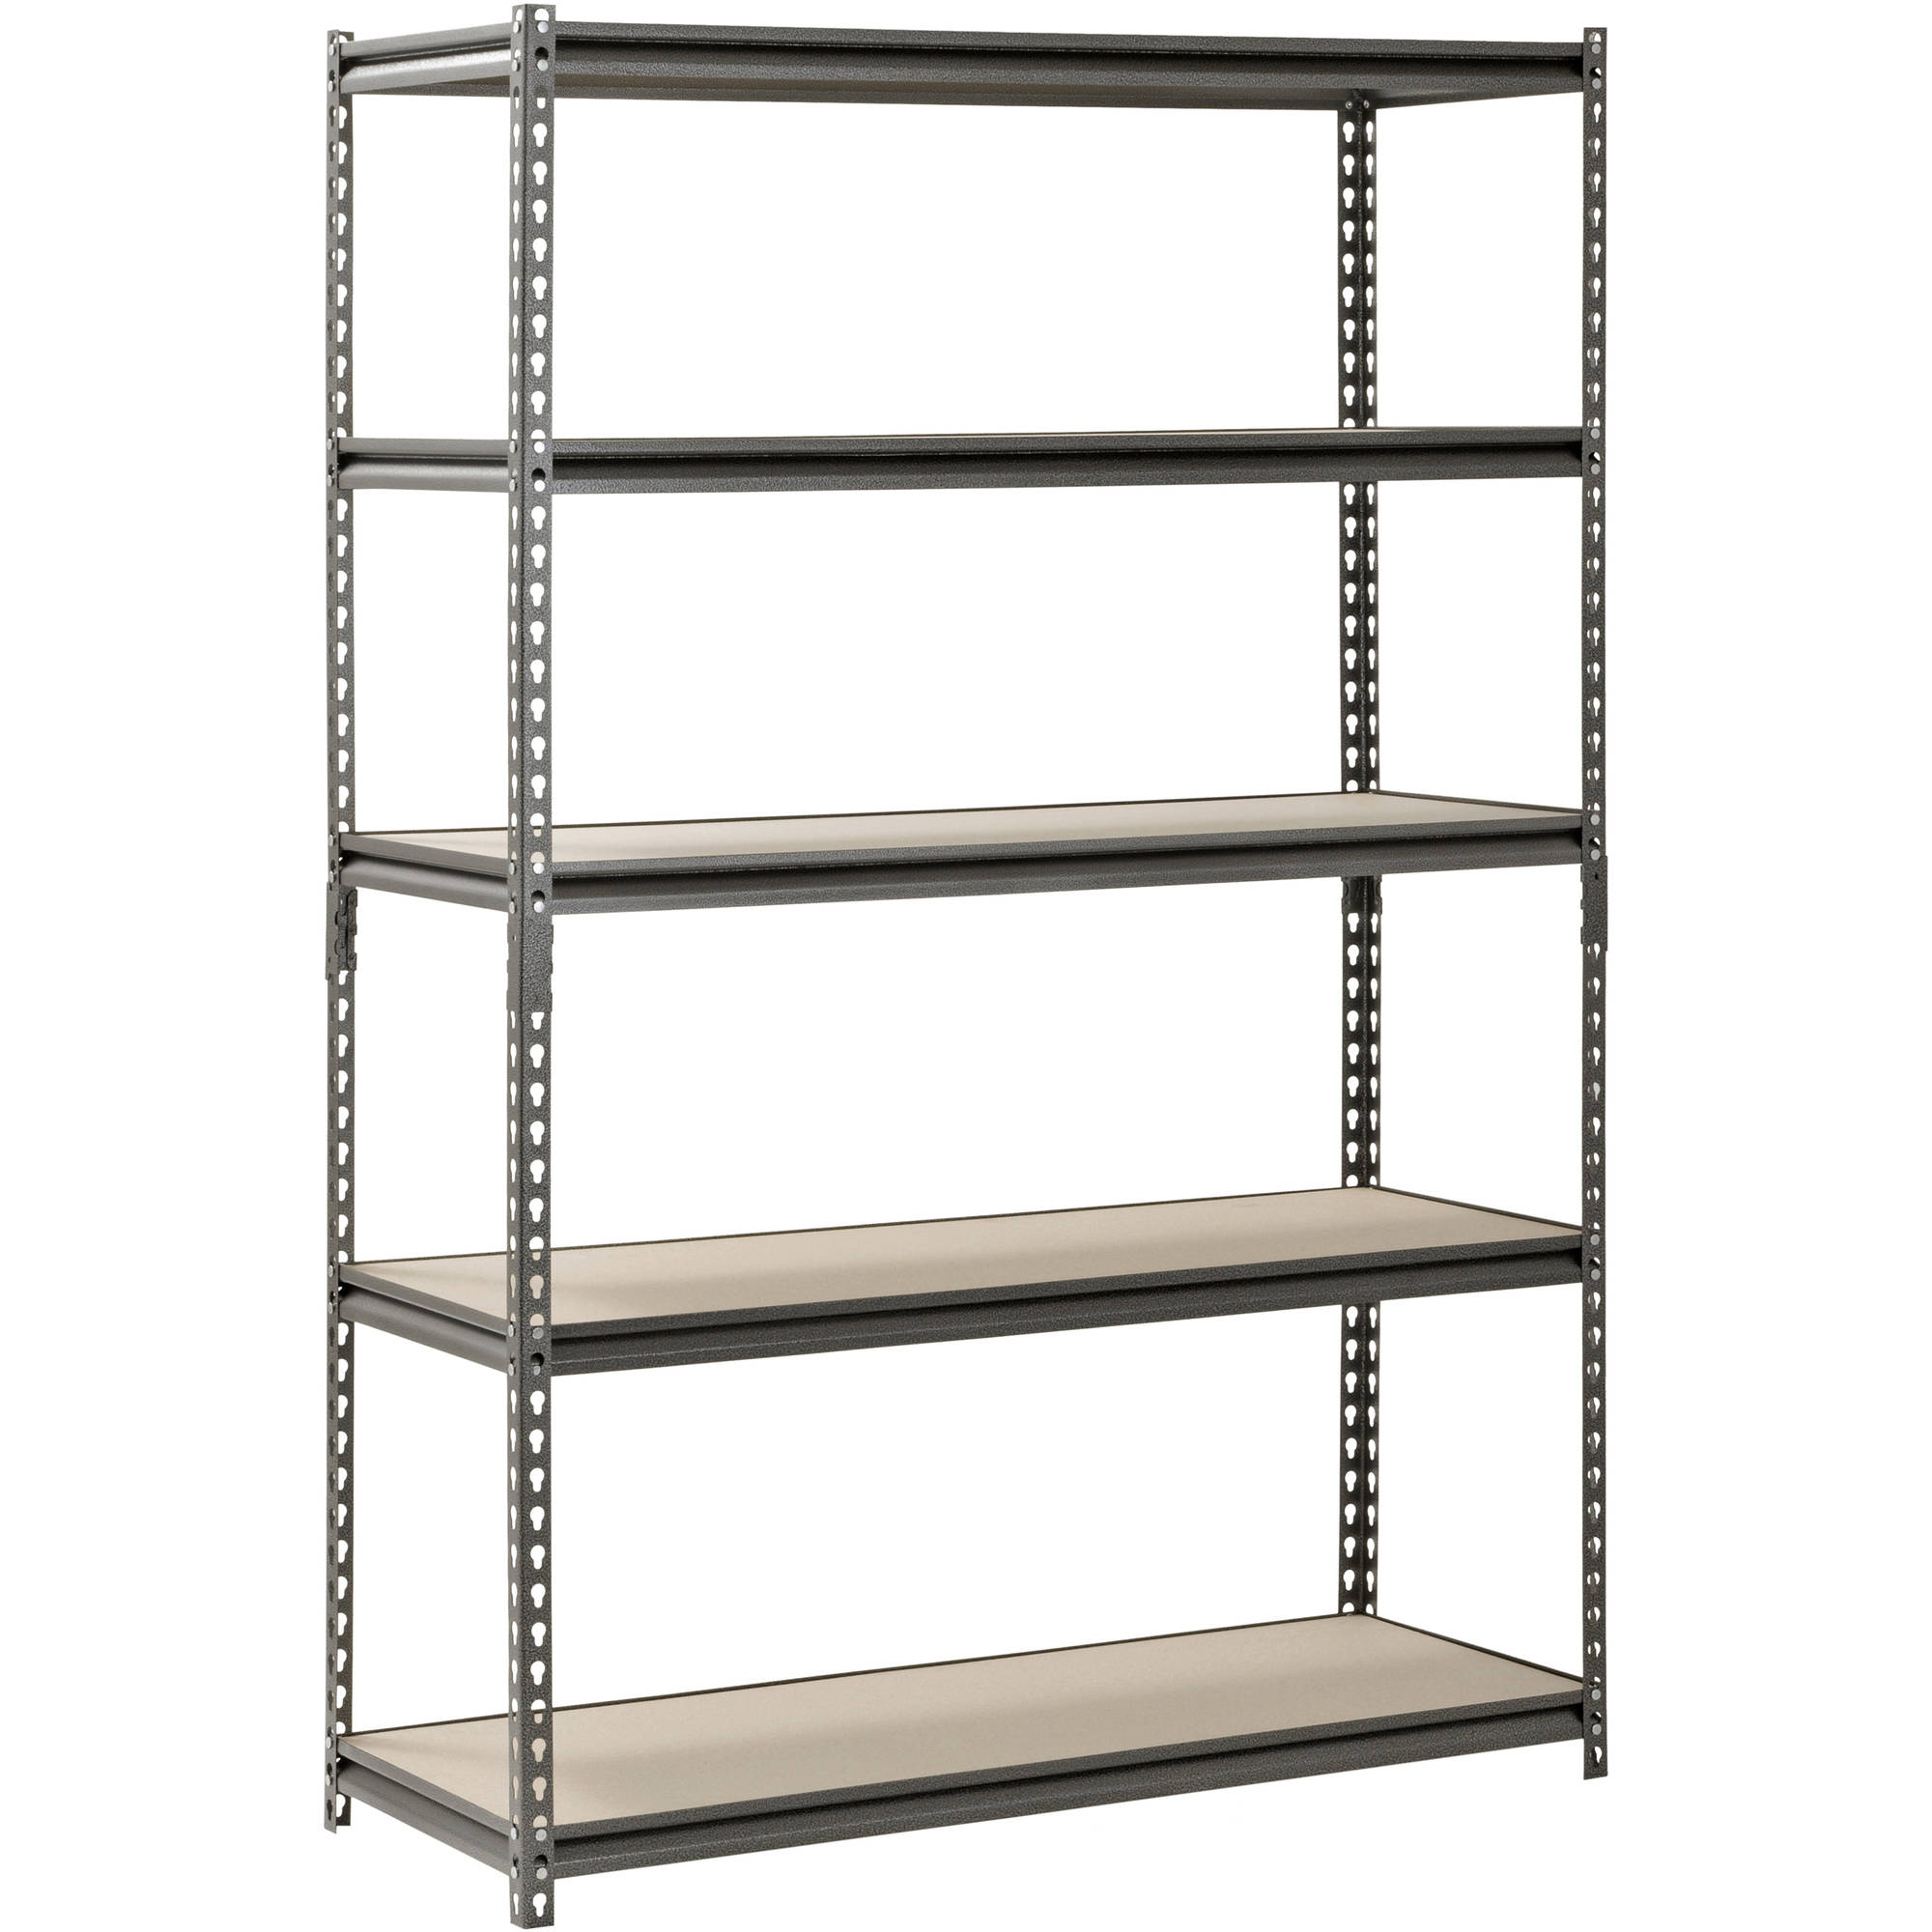 "Muscle Rack 5-Shelf Steel Shelving, Silver-Vein, 18"" D x 48"" W x 72"" H"